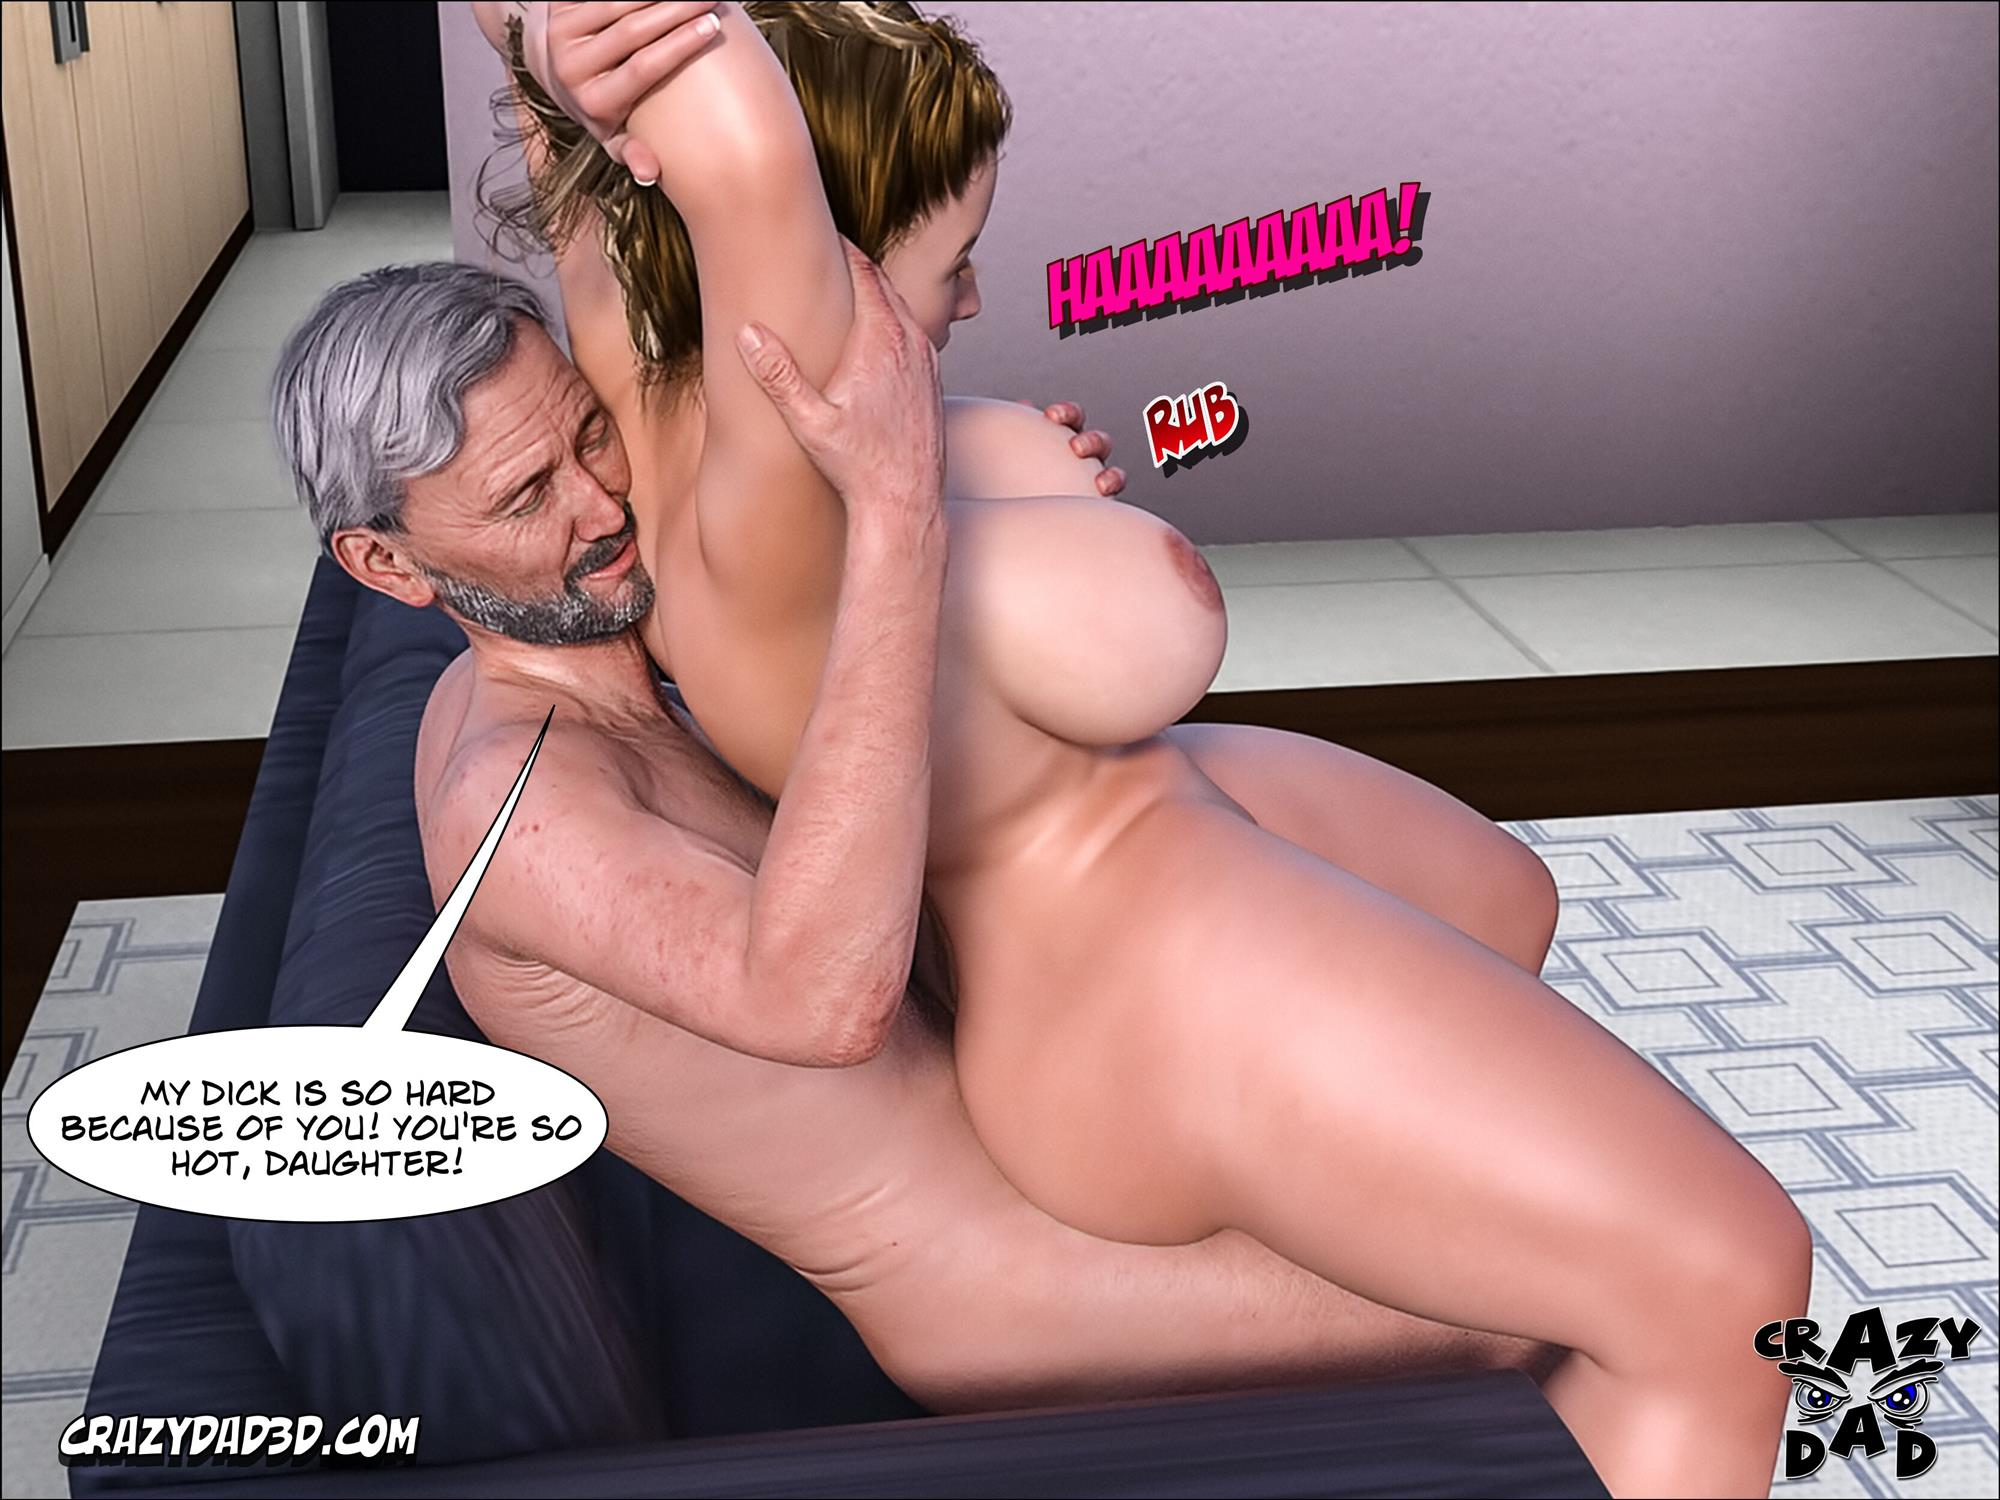 Father-in-Law at Home 10 [Crazy Dad 3D] - Foto 32